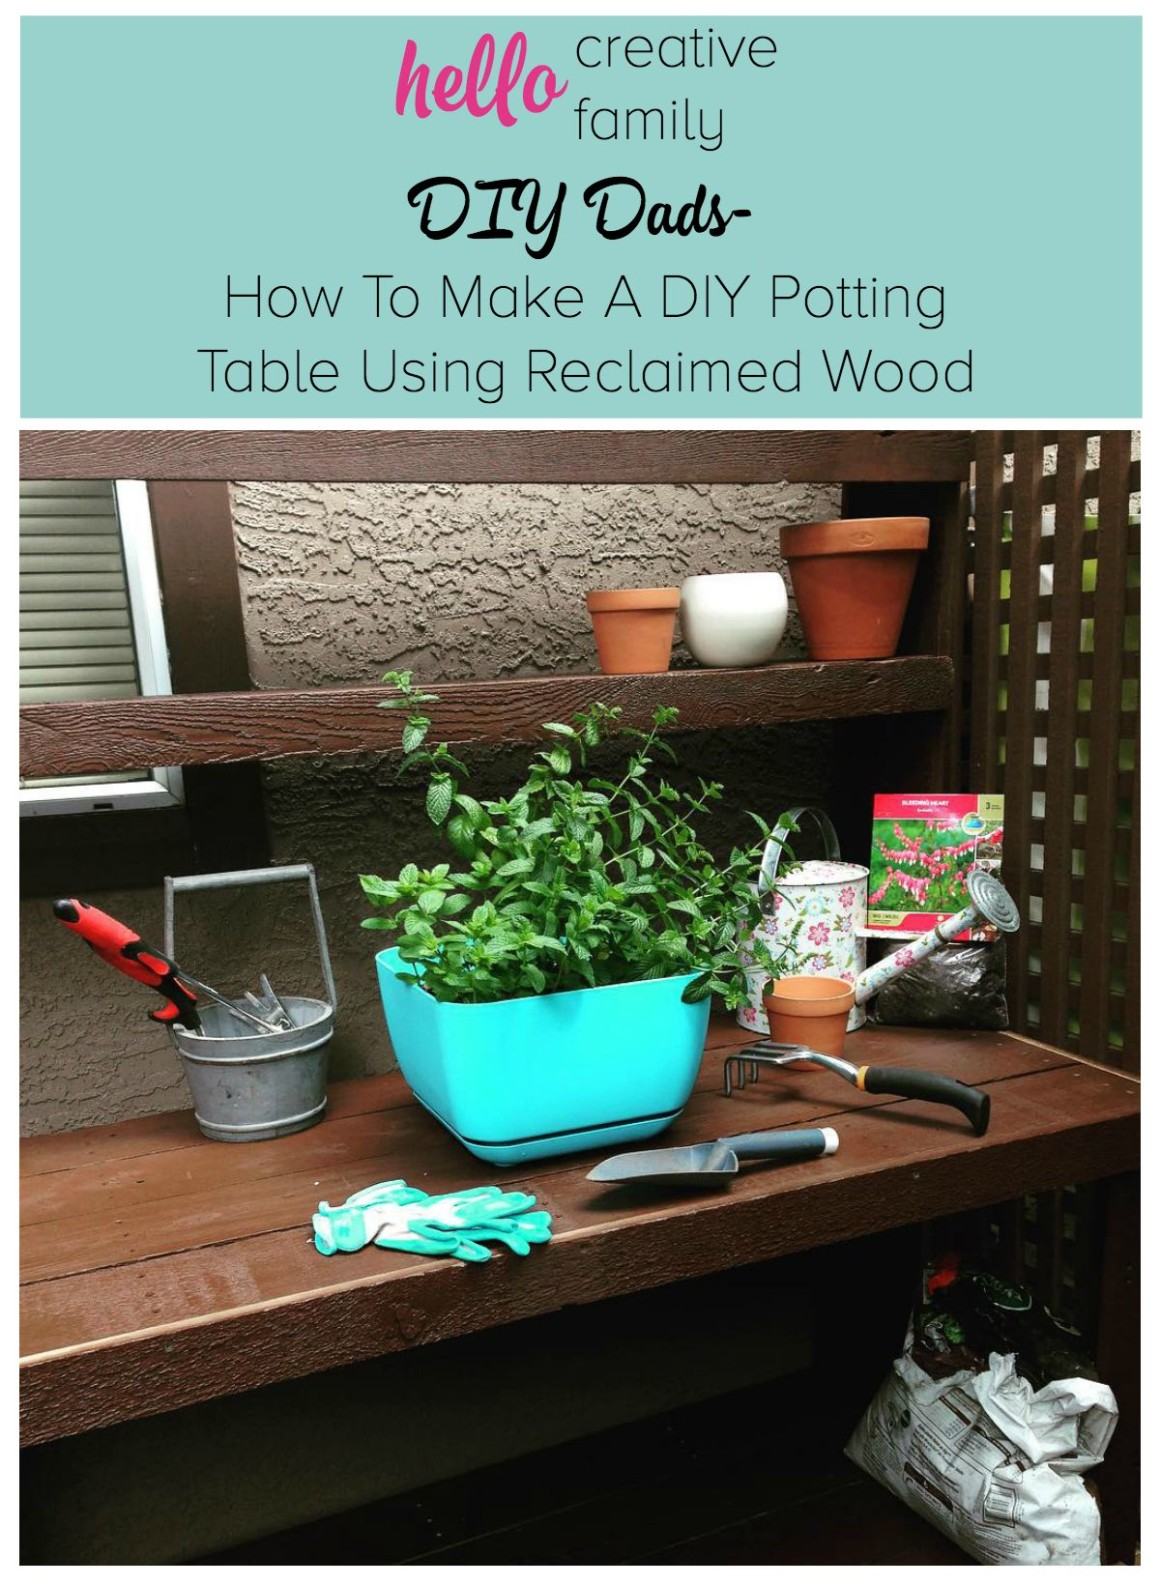 DIY Dads- How To Make A DIY Potting Table Using Reclaimed Wood